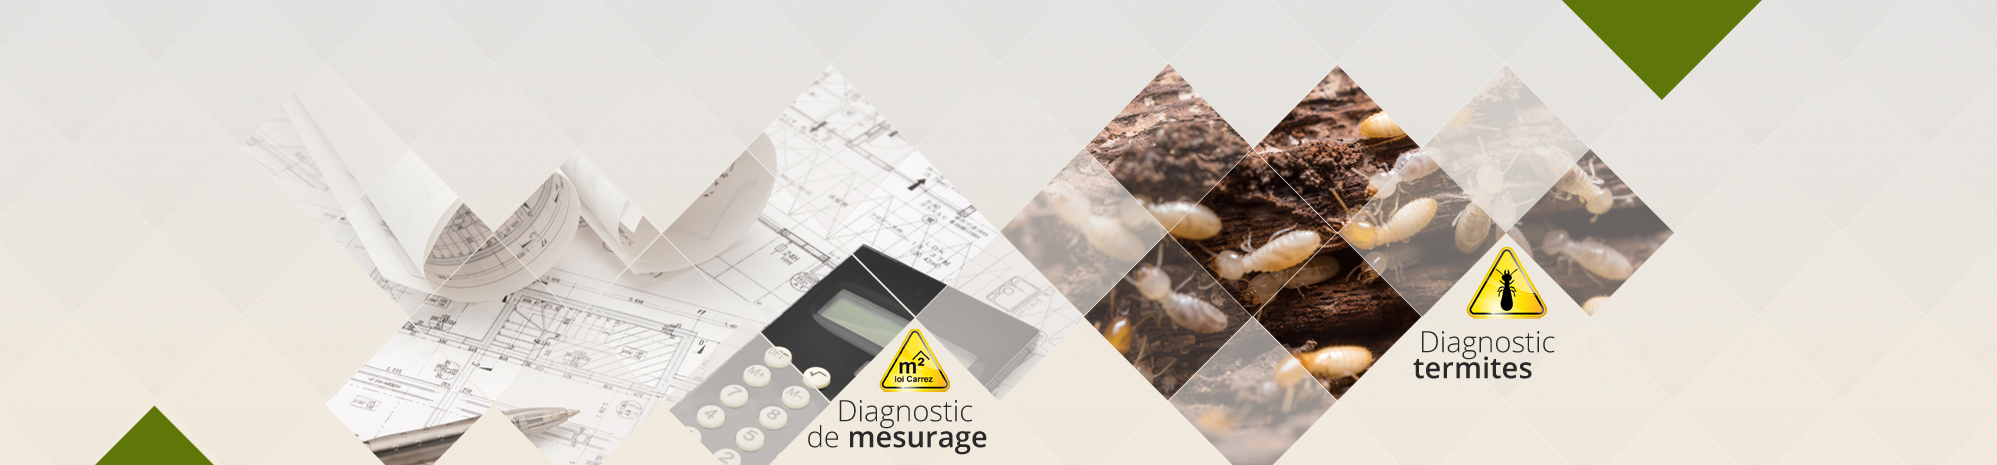 Diagnostic immobilier Nîmes